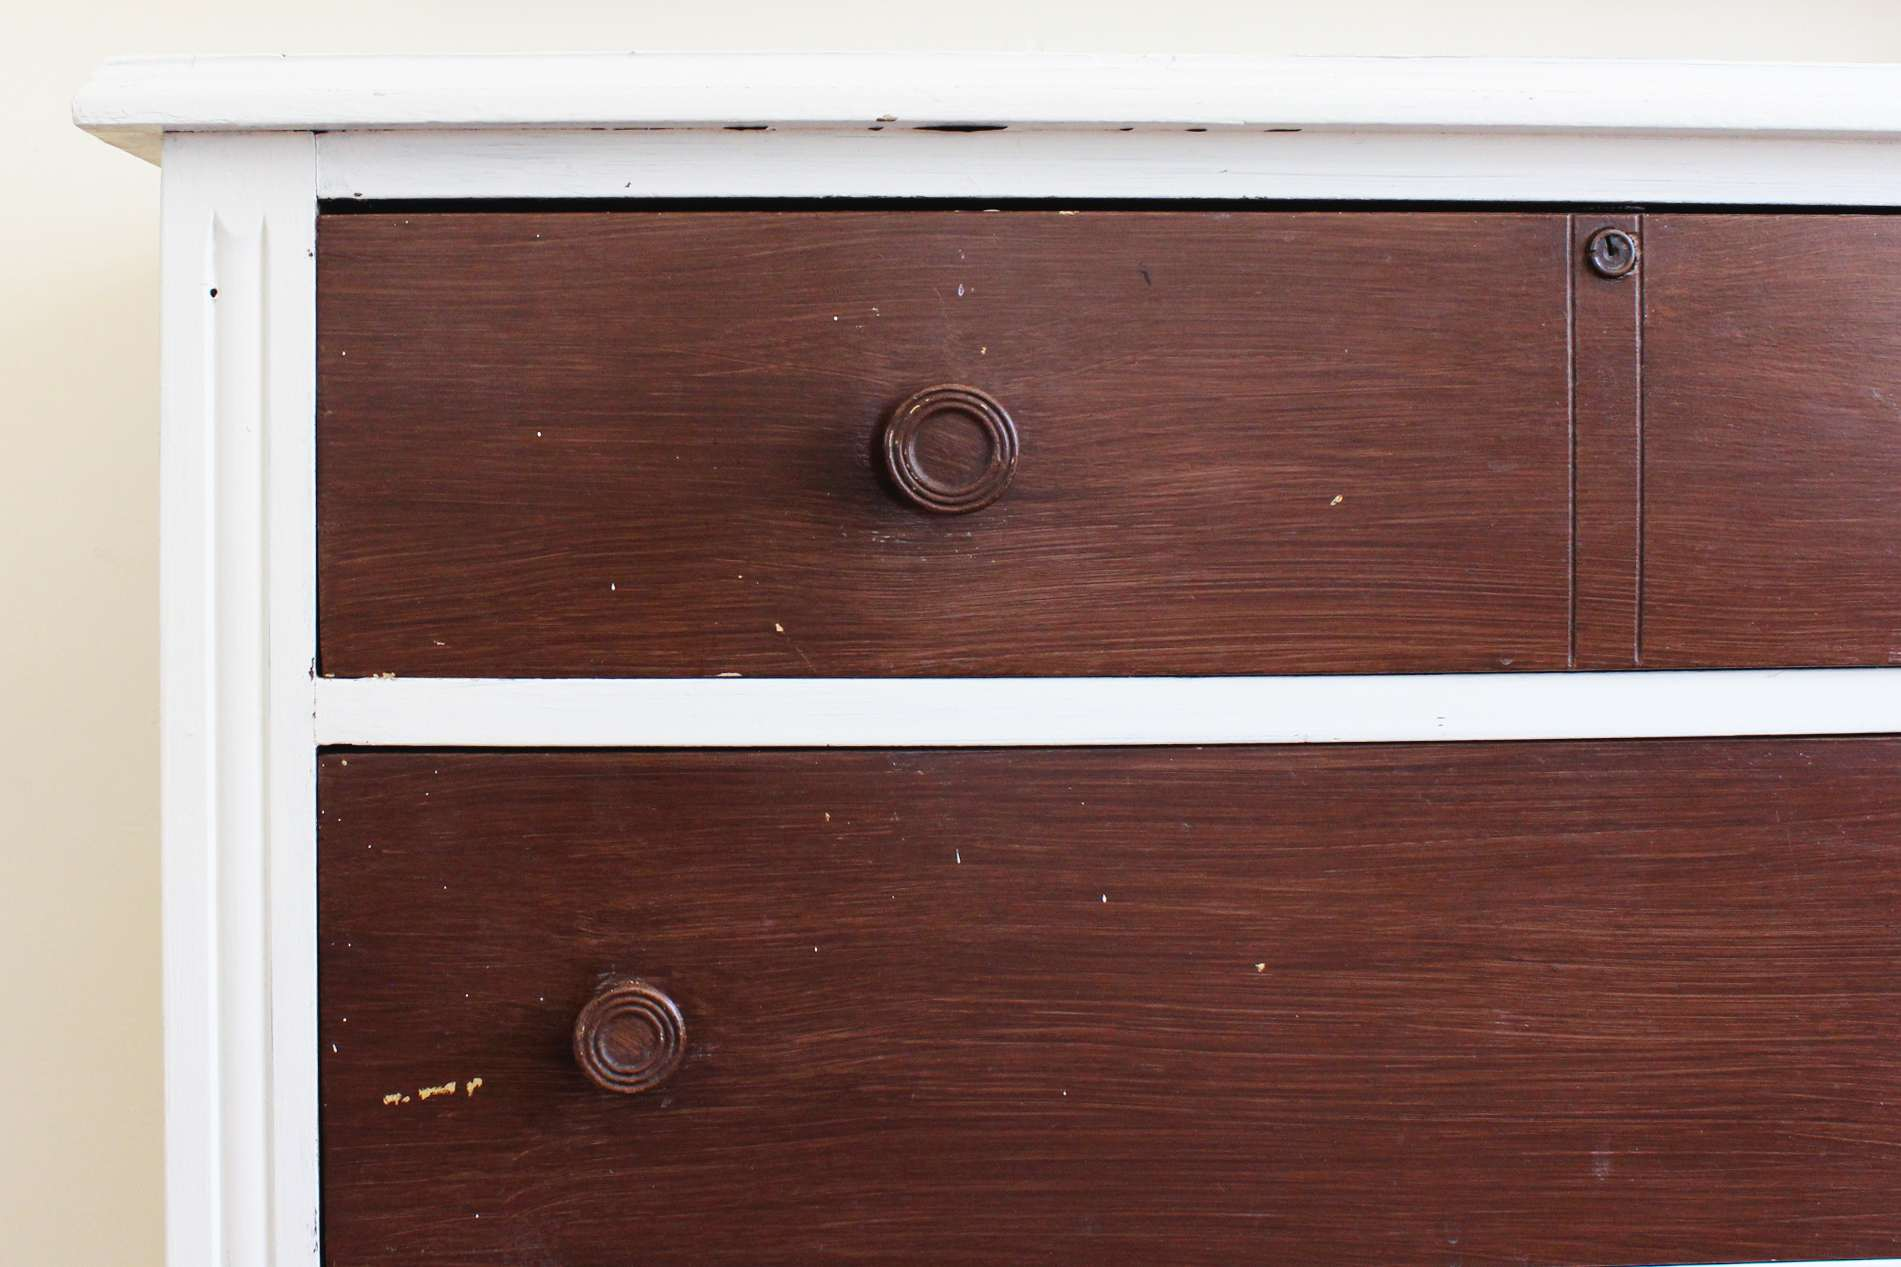 A Picture Of An Old Wooden Dresser With White Trim